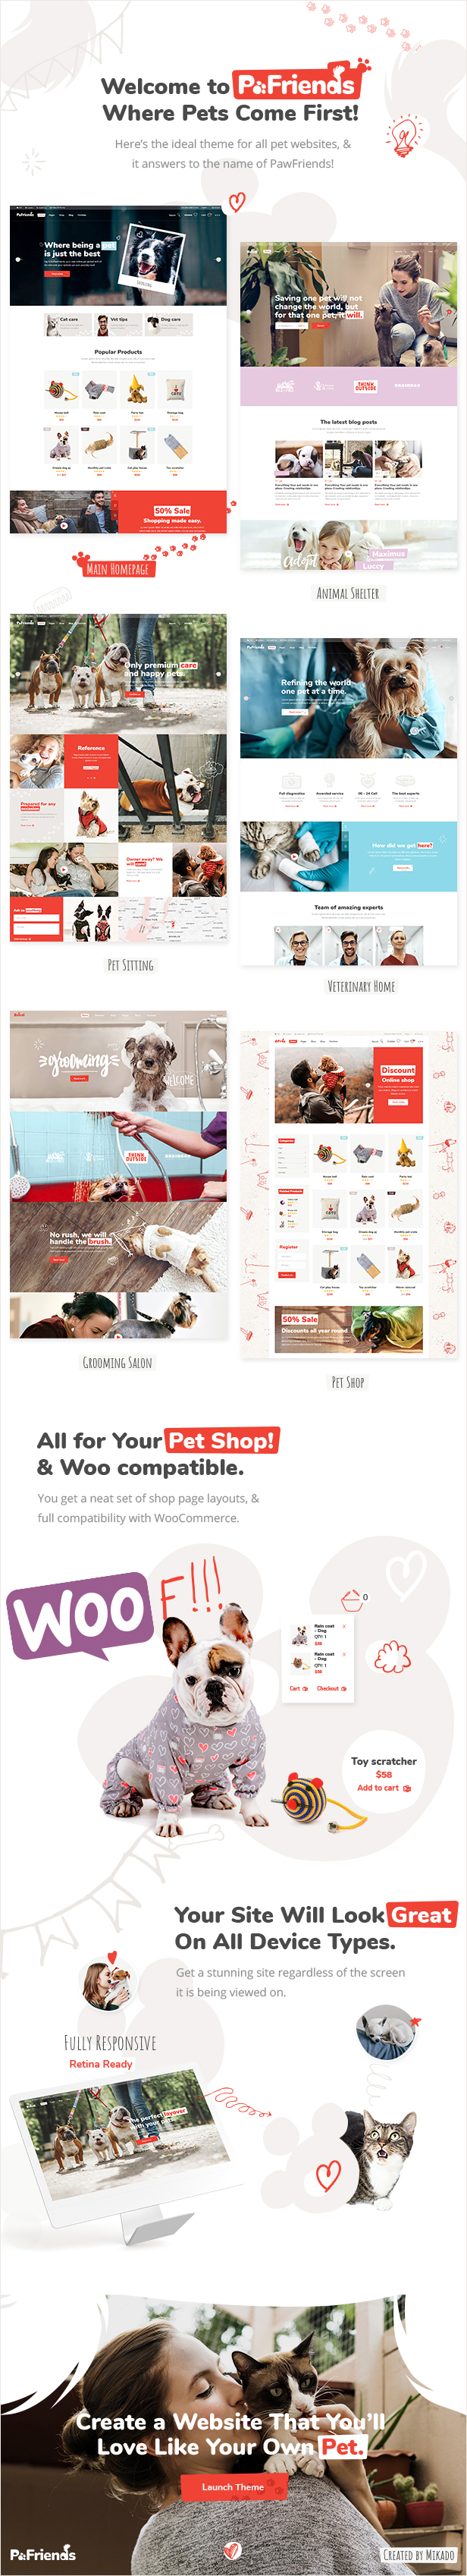 PawFriends - Pet Shop and Veterinary Theme - 1